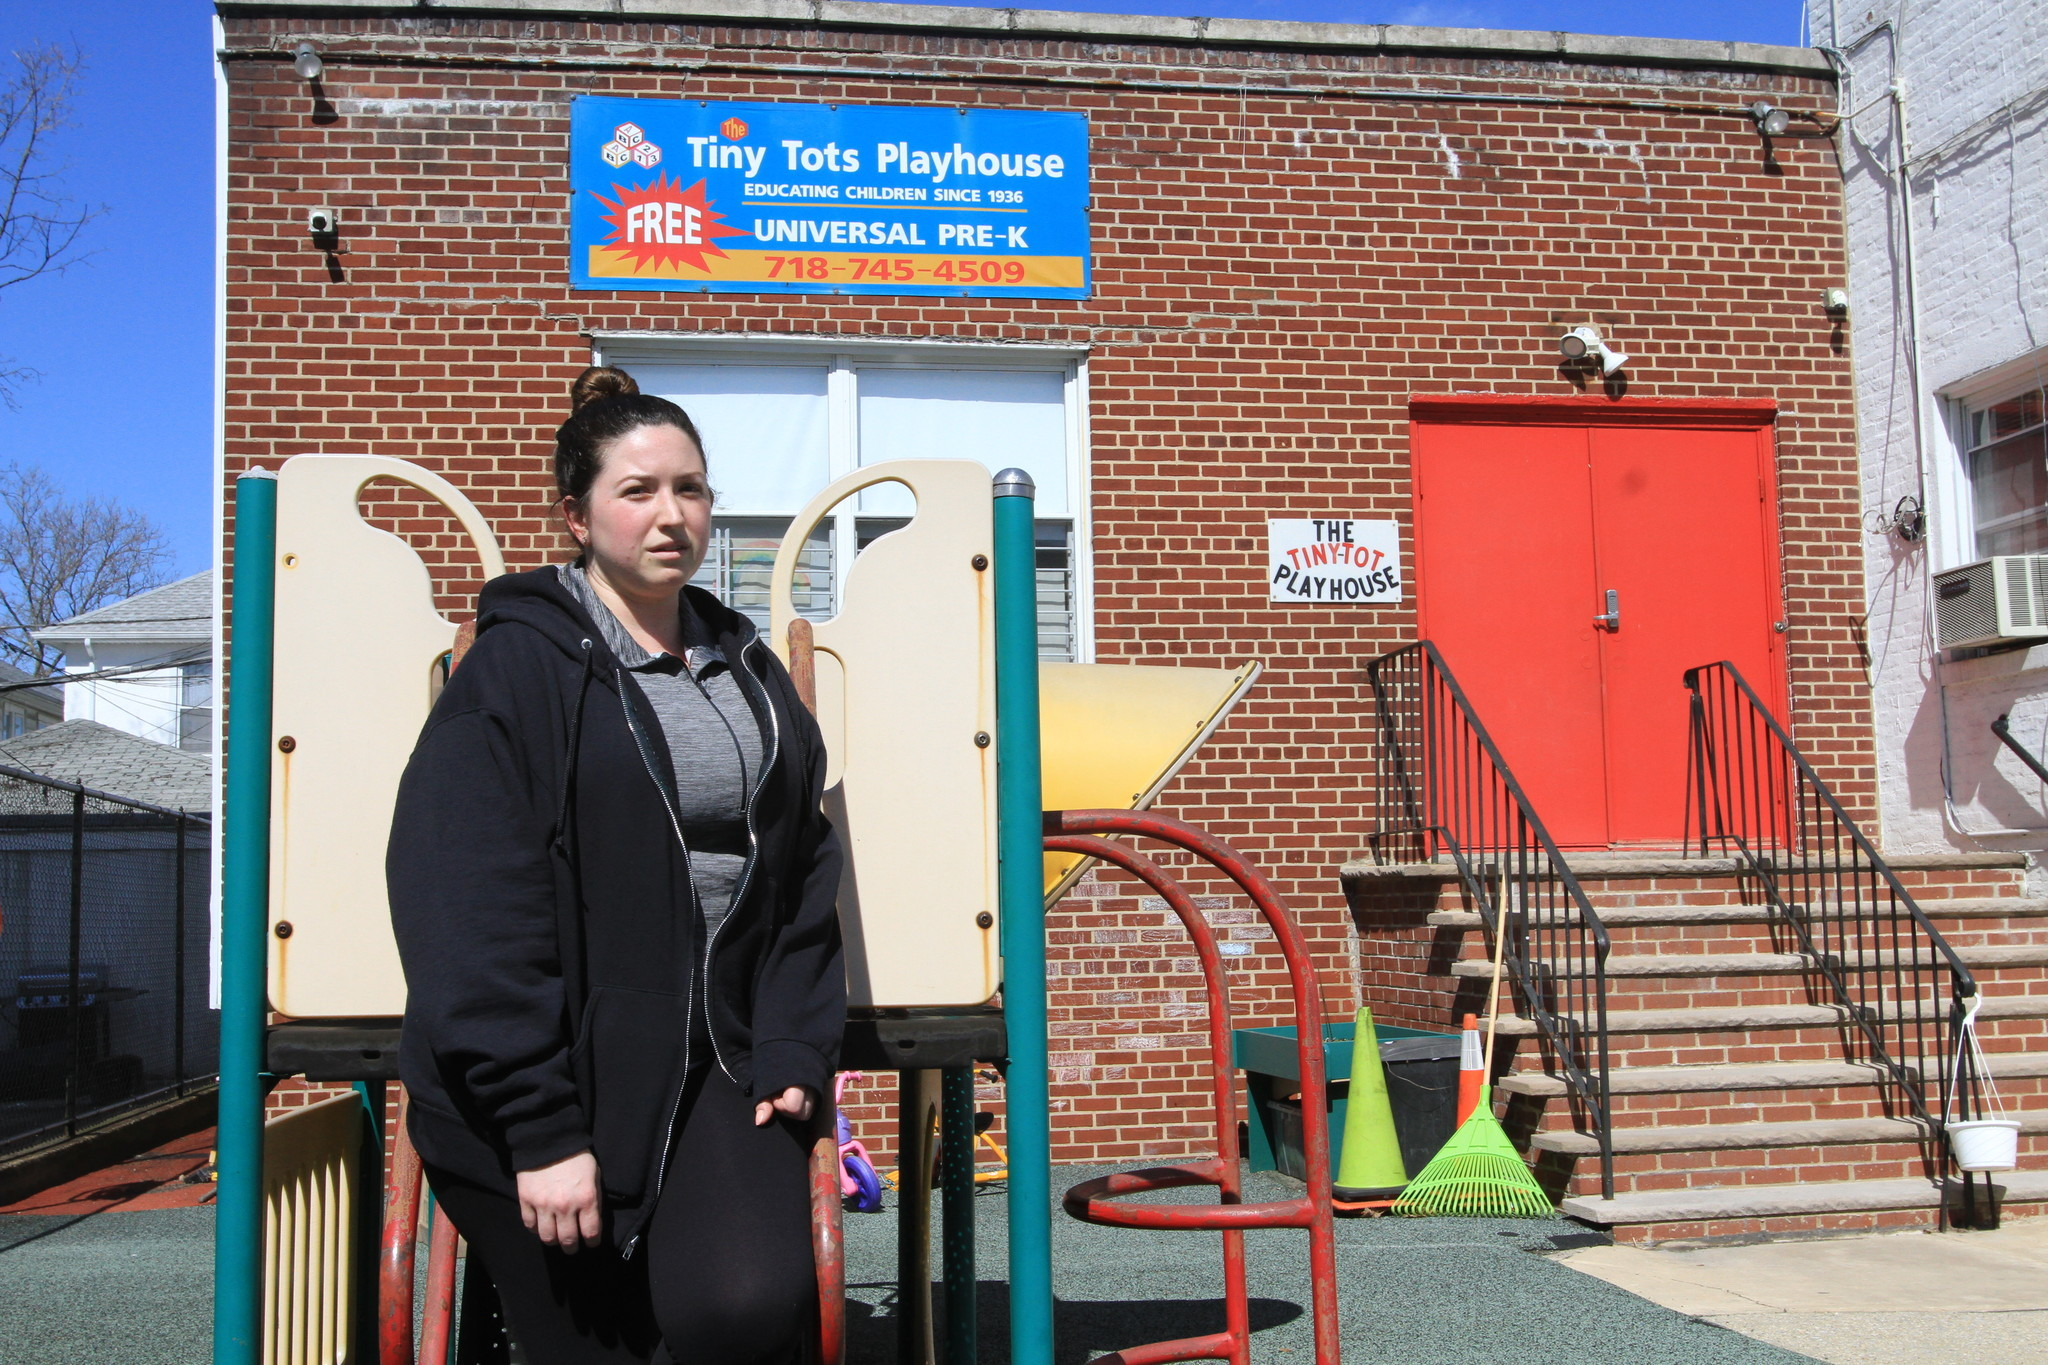 NYC closes all daycares except city childcare centers for frontline workers